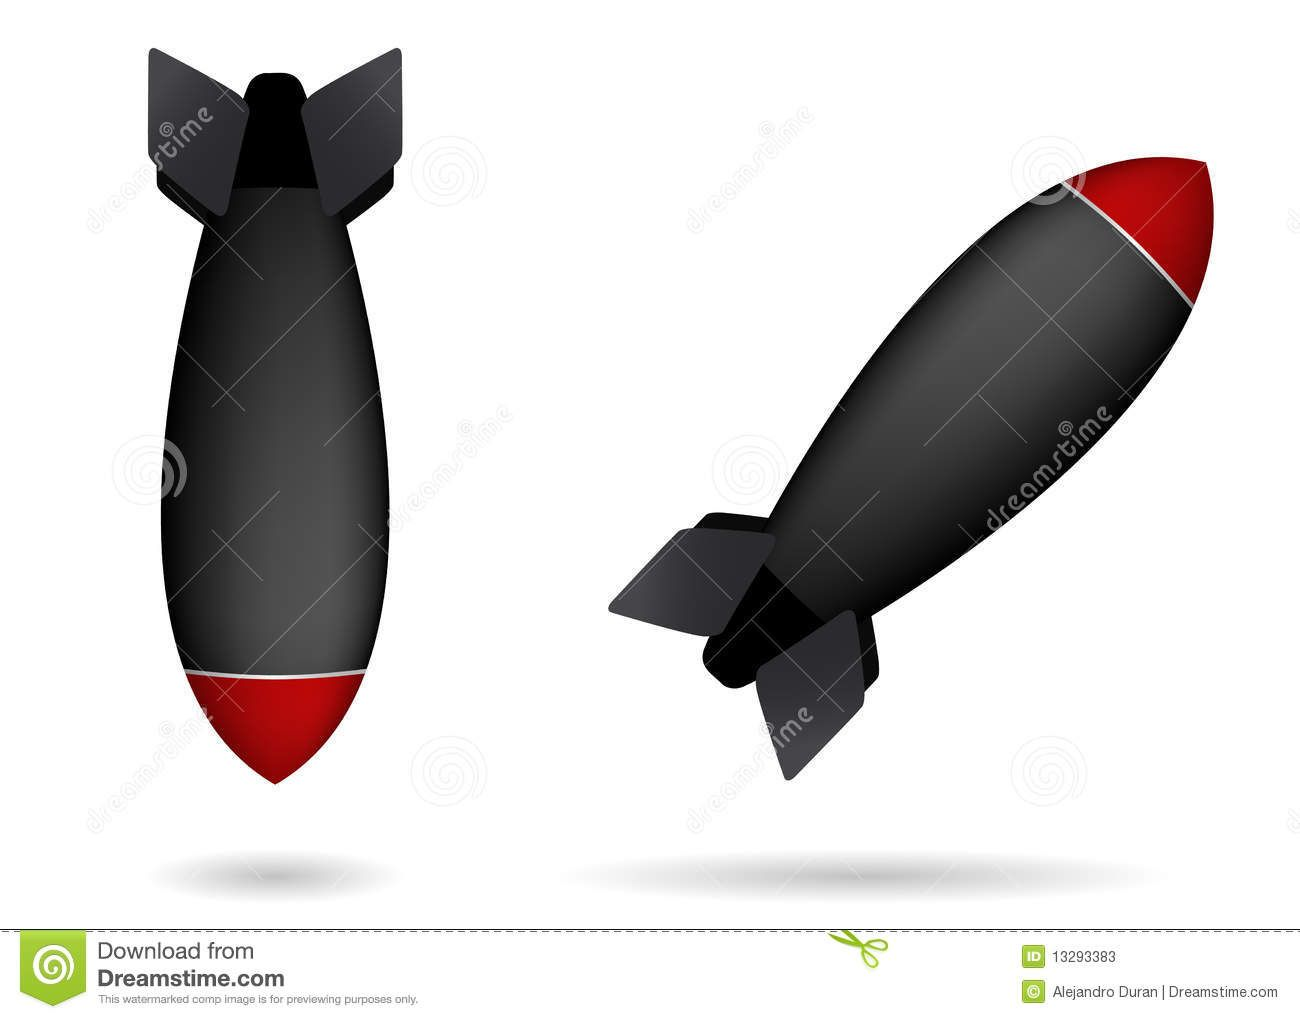 Nuclear missile clipart graphic library download Nuclear Missiles Clipart | tattoo | Game props, Nuclear bomb ... graphic library download